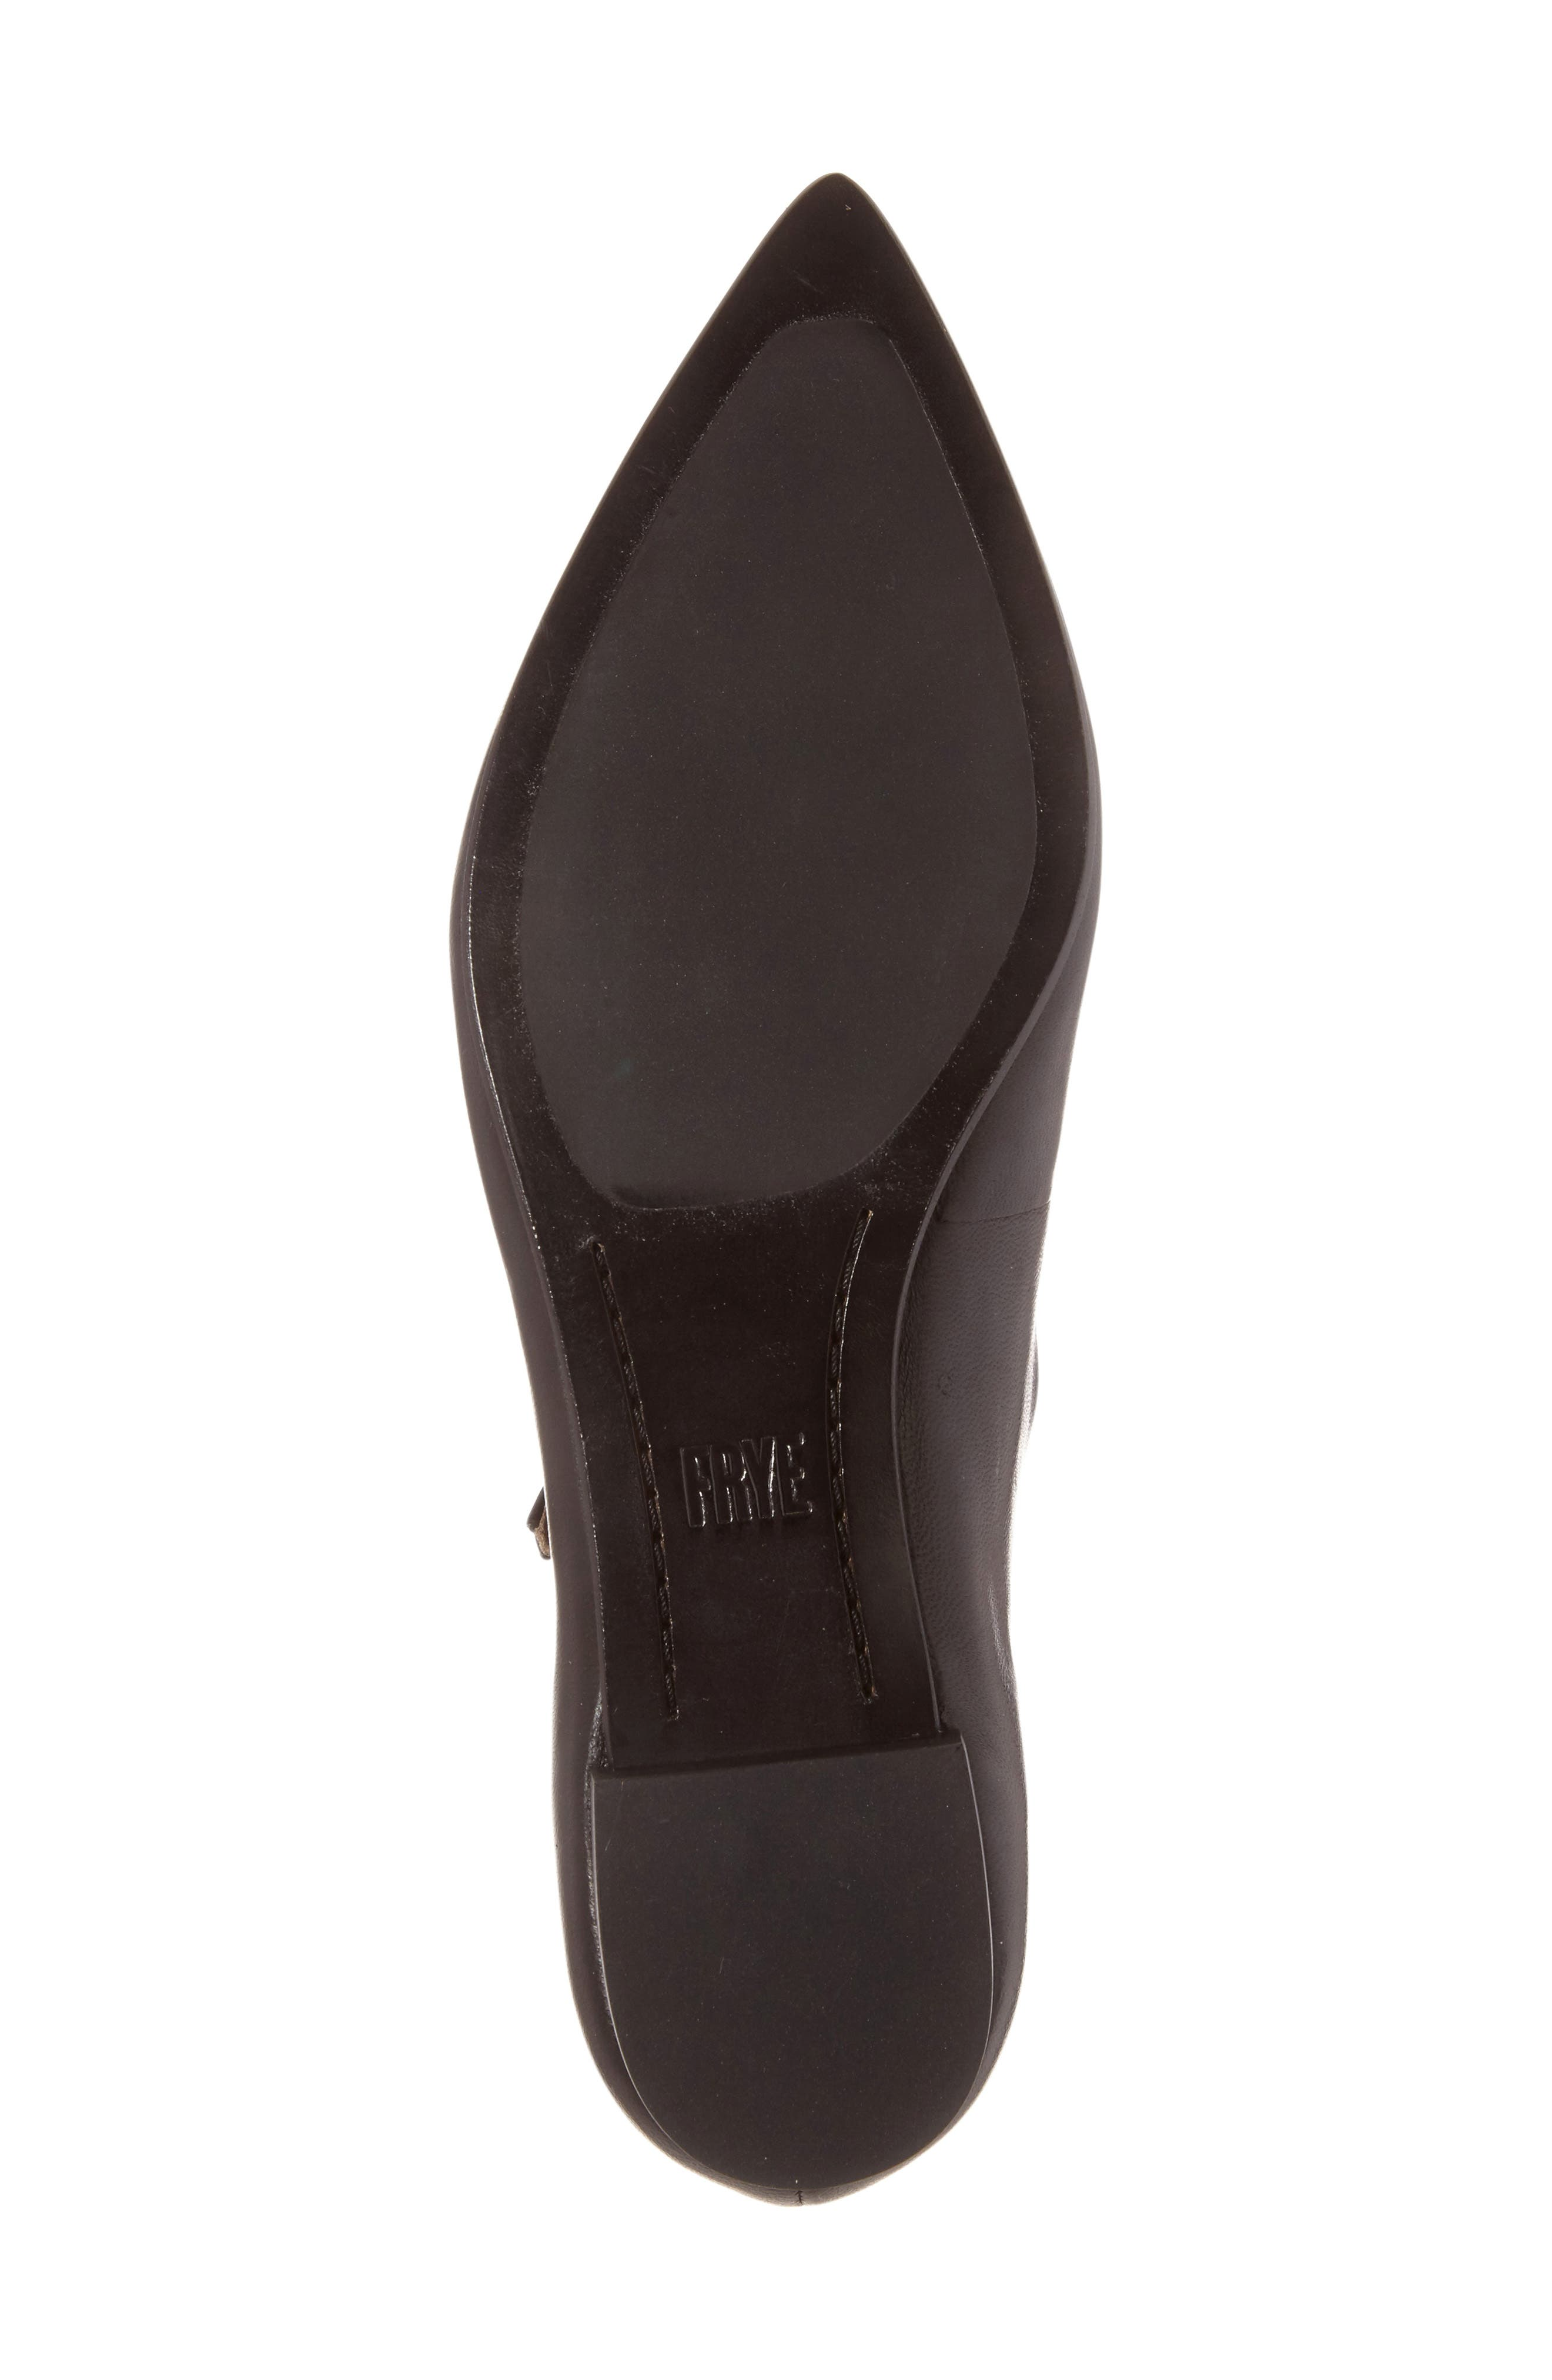 Sienna Cross Ballet Flat,                             Alternate thumbnail 4, color,                             Black